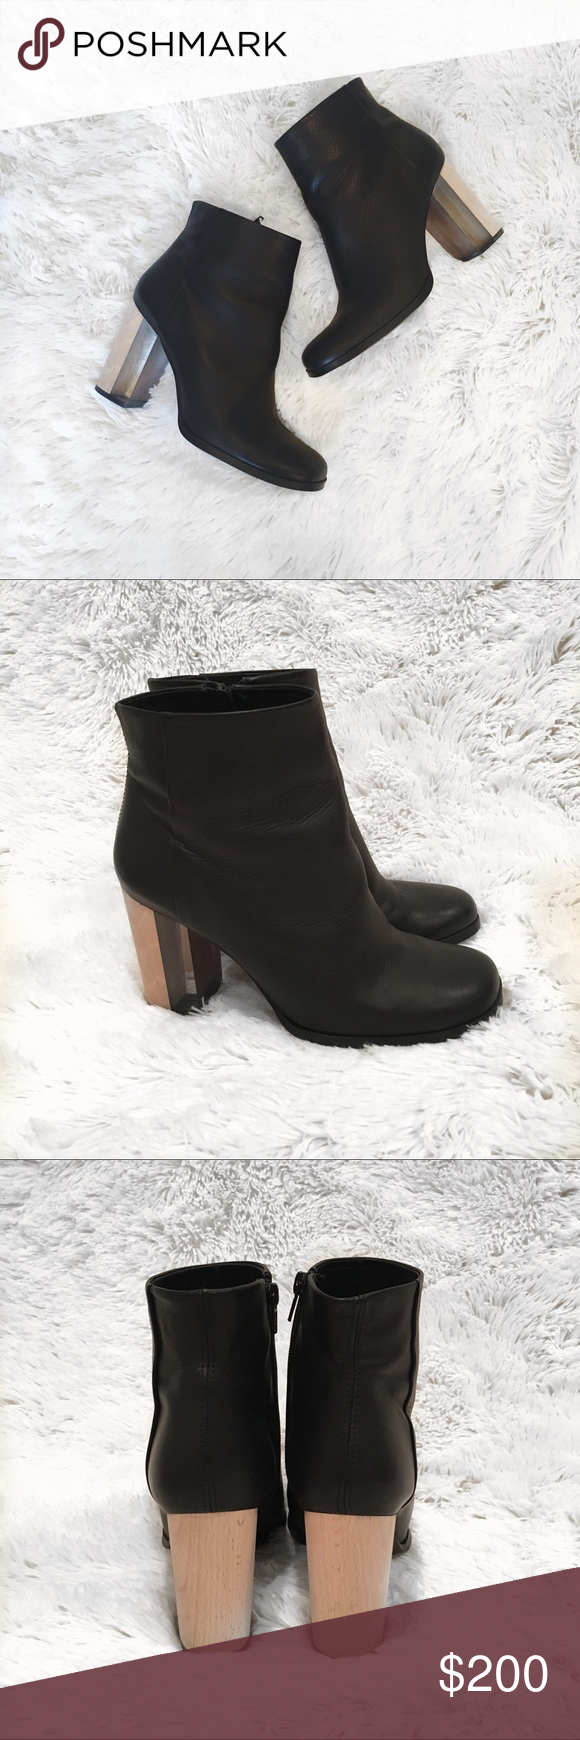 b71accea6f9 Miista Ali Black Leather Boot with Wood/Clear Heel Worn a few time ...